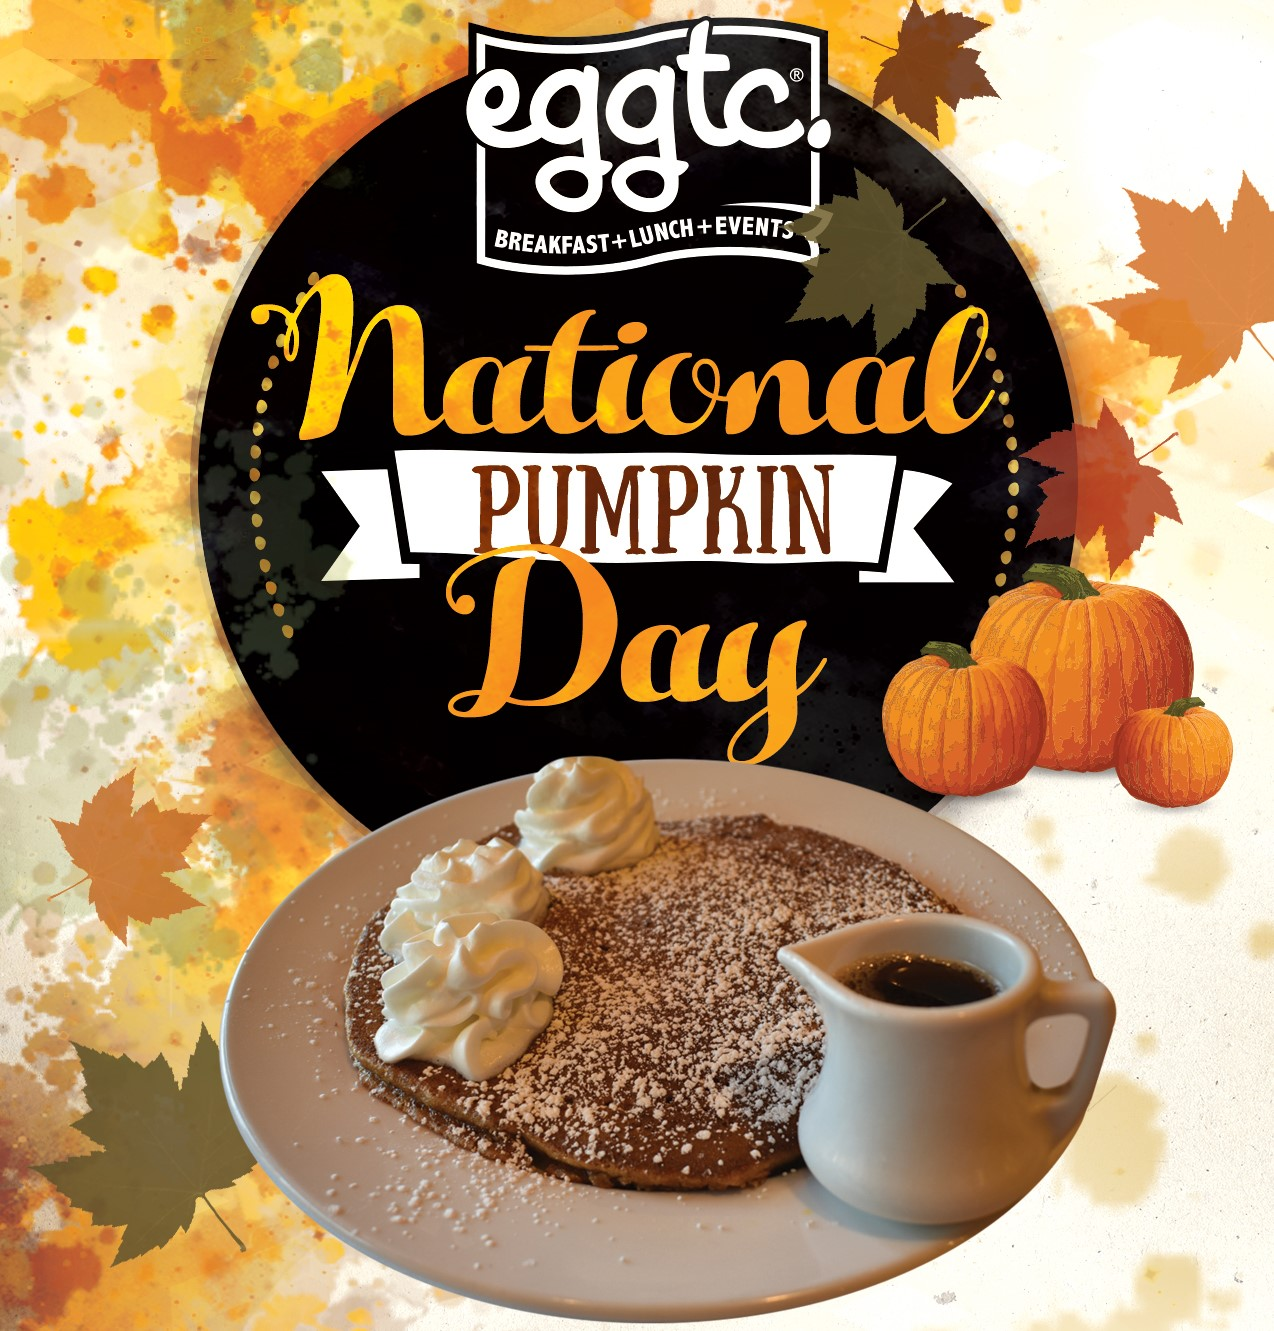 Celebrate National Pumpkin Day with Two Fall Favorites!